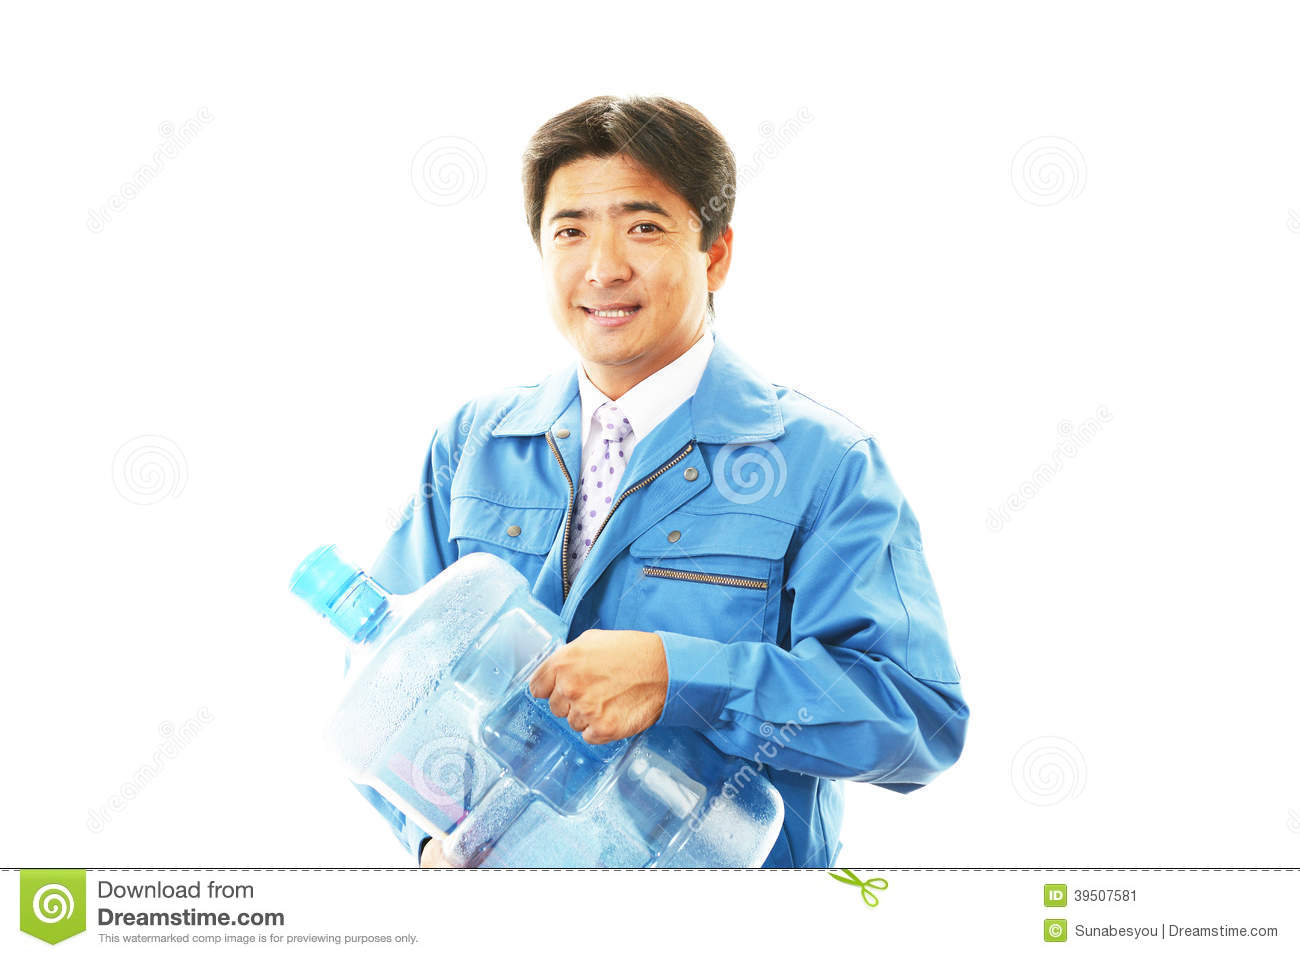 Worker carrying large water bottle.